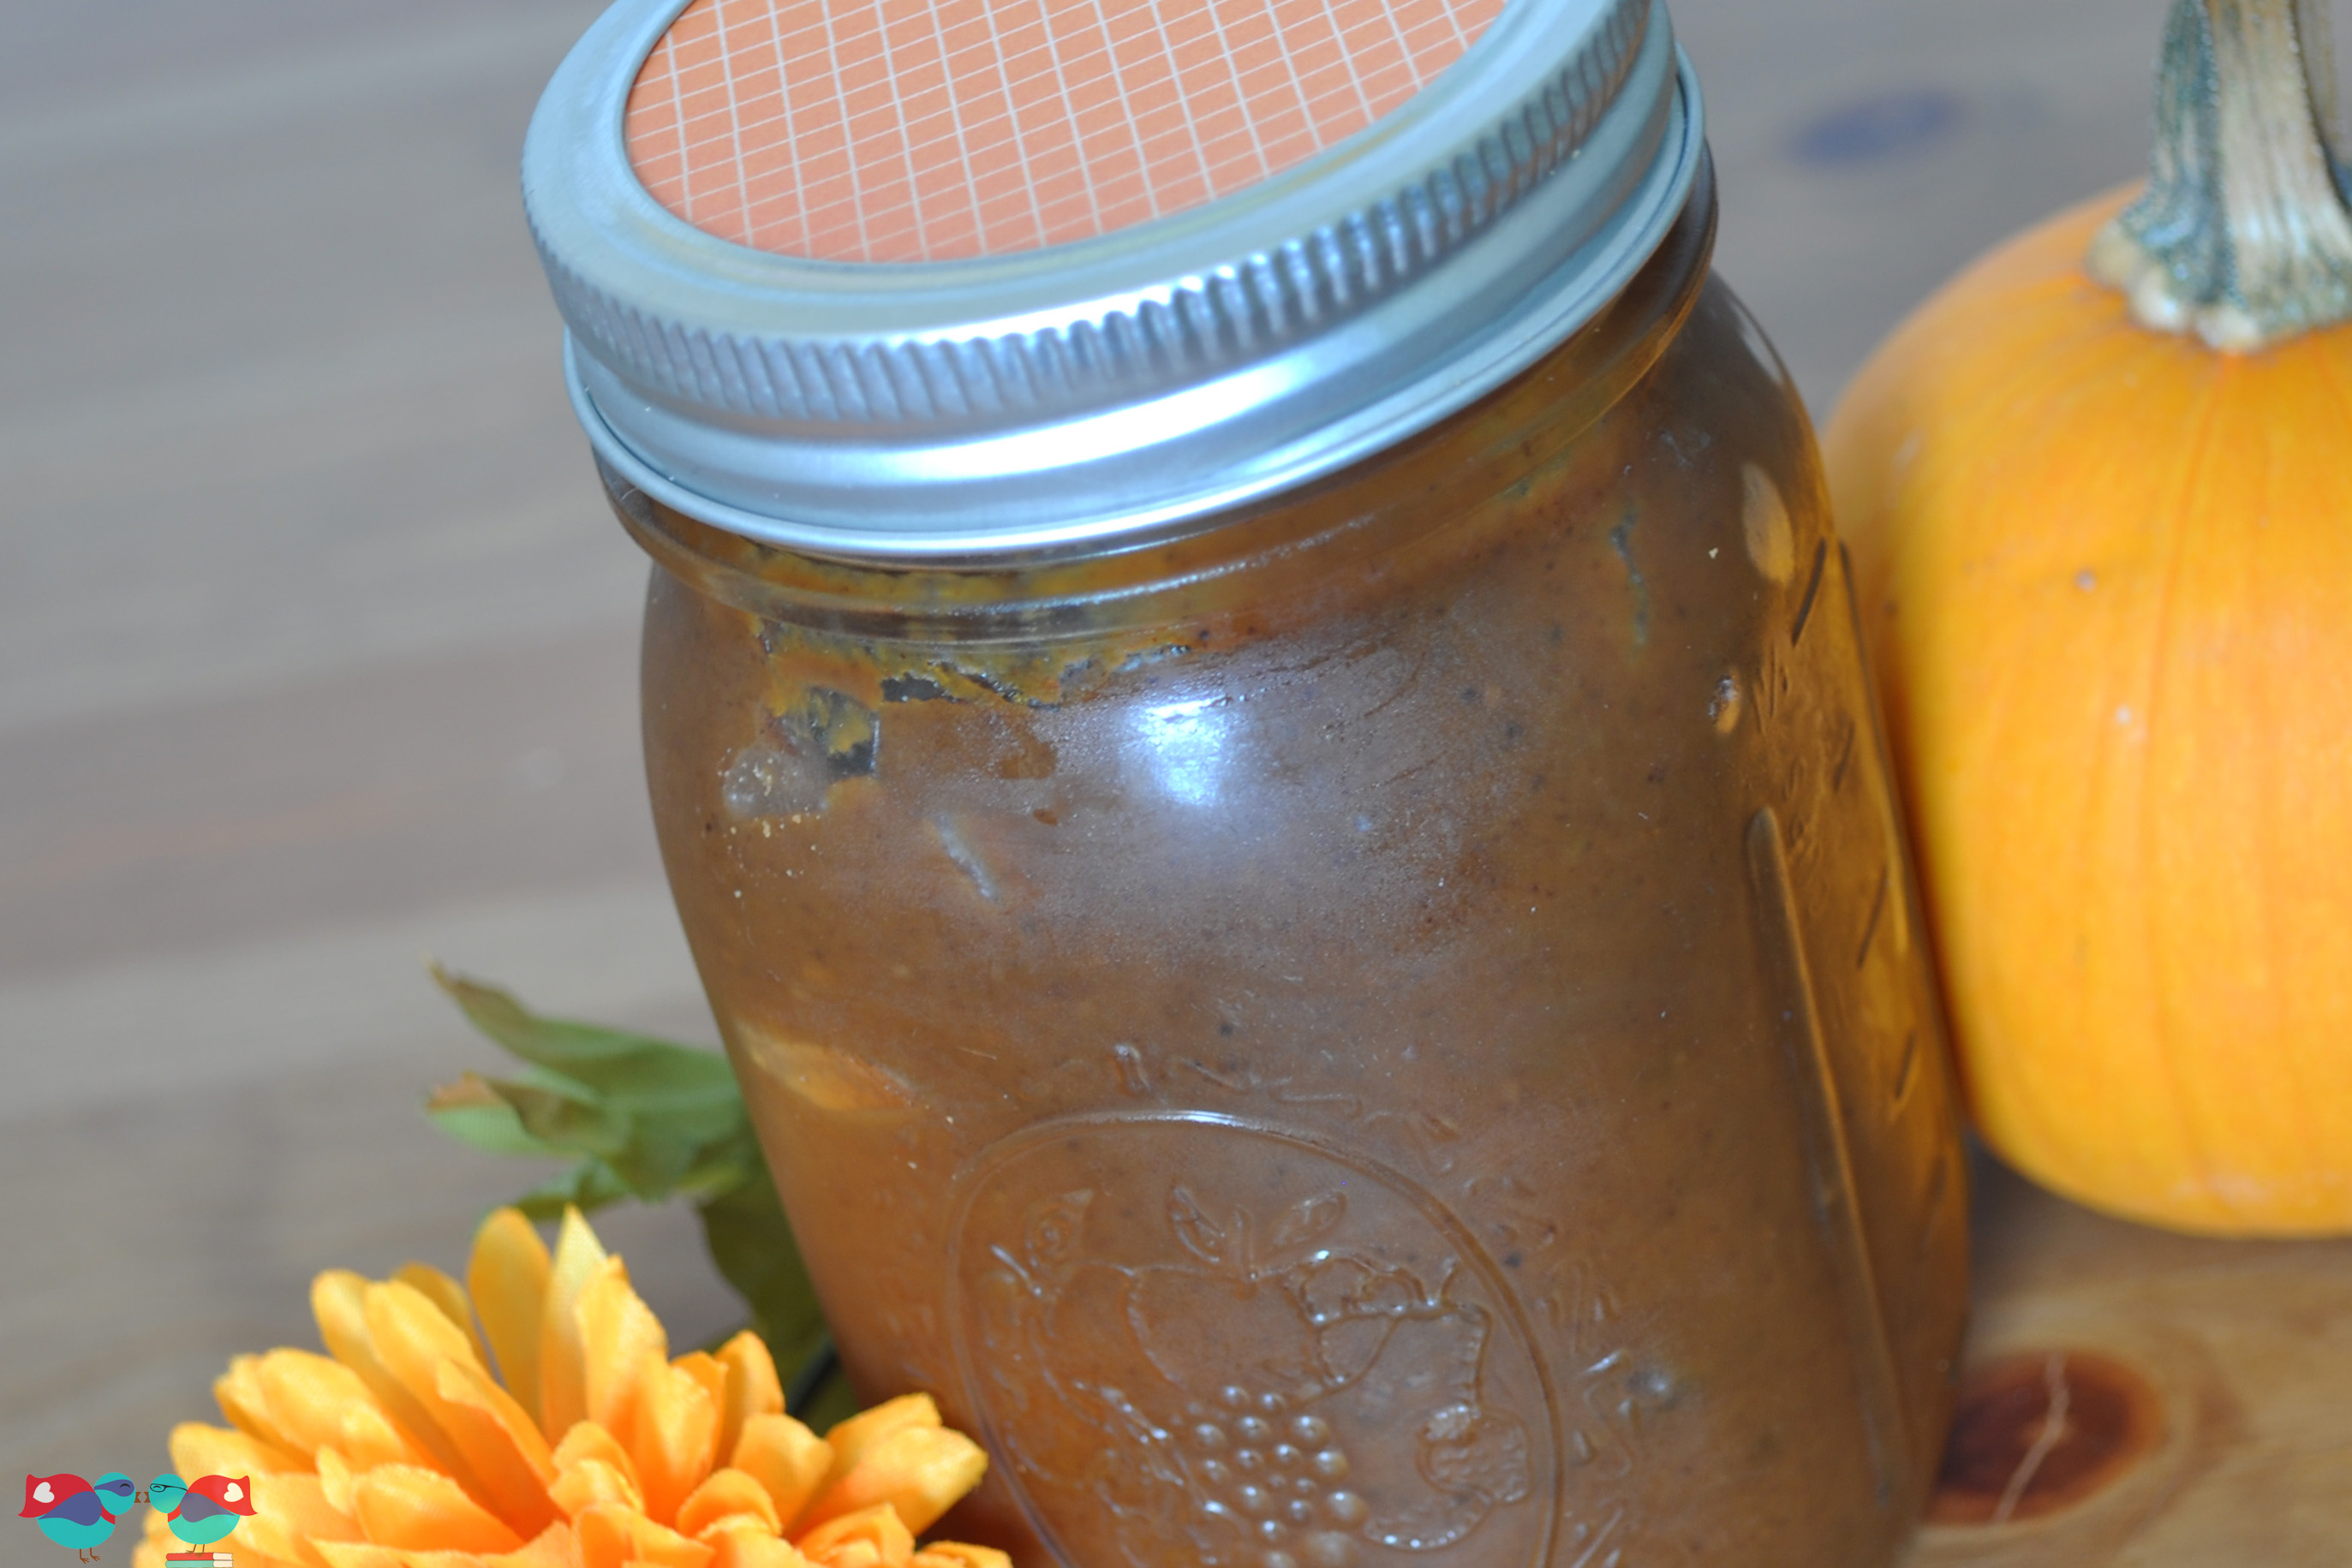 ... might like to give this crock pot pumpkin butter recipe a try as well